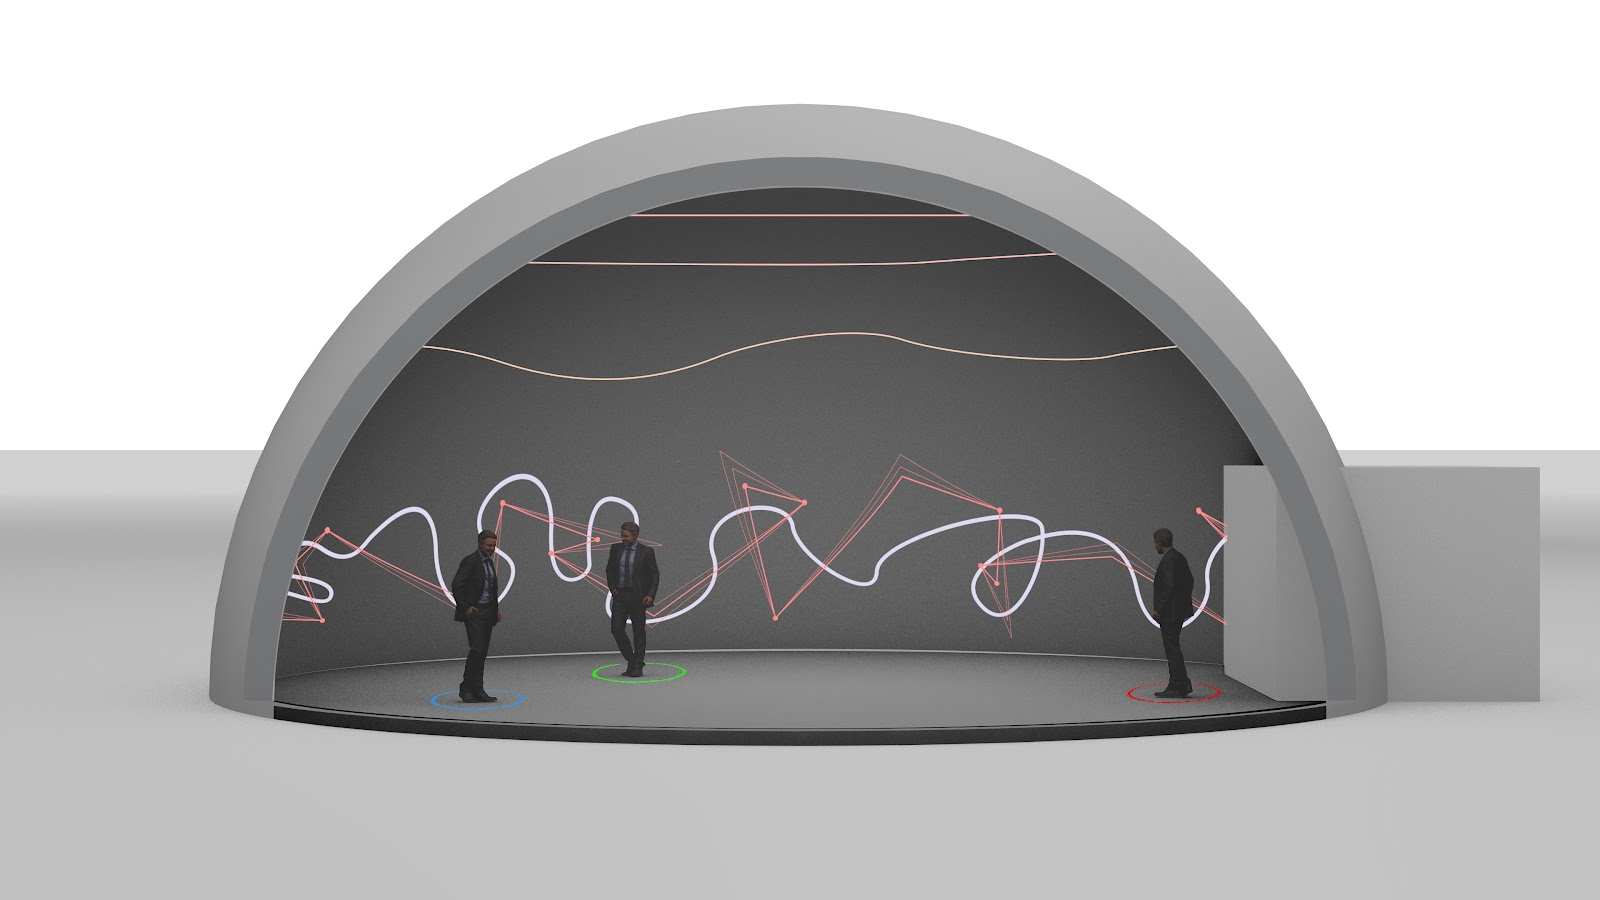 Grey sketch of a dome where three people are surrounded by lights